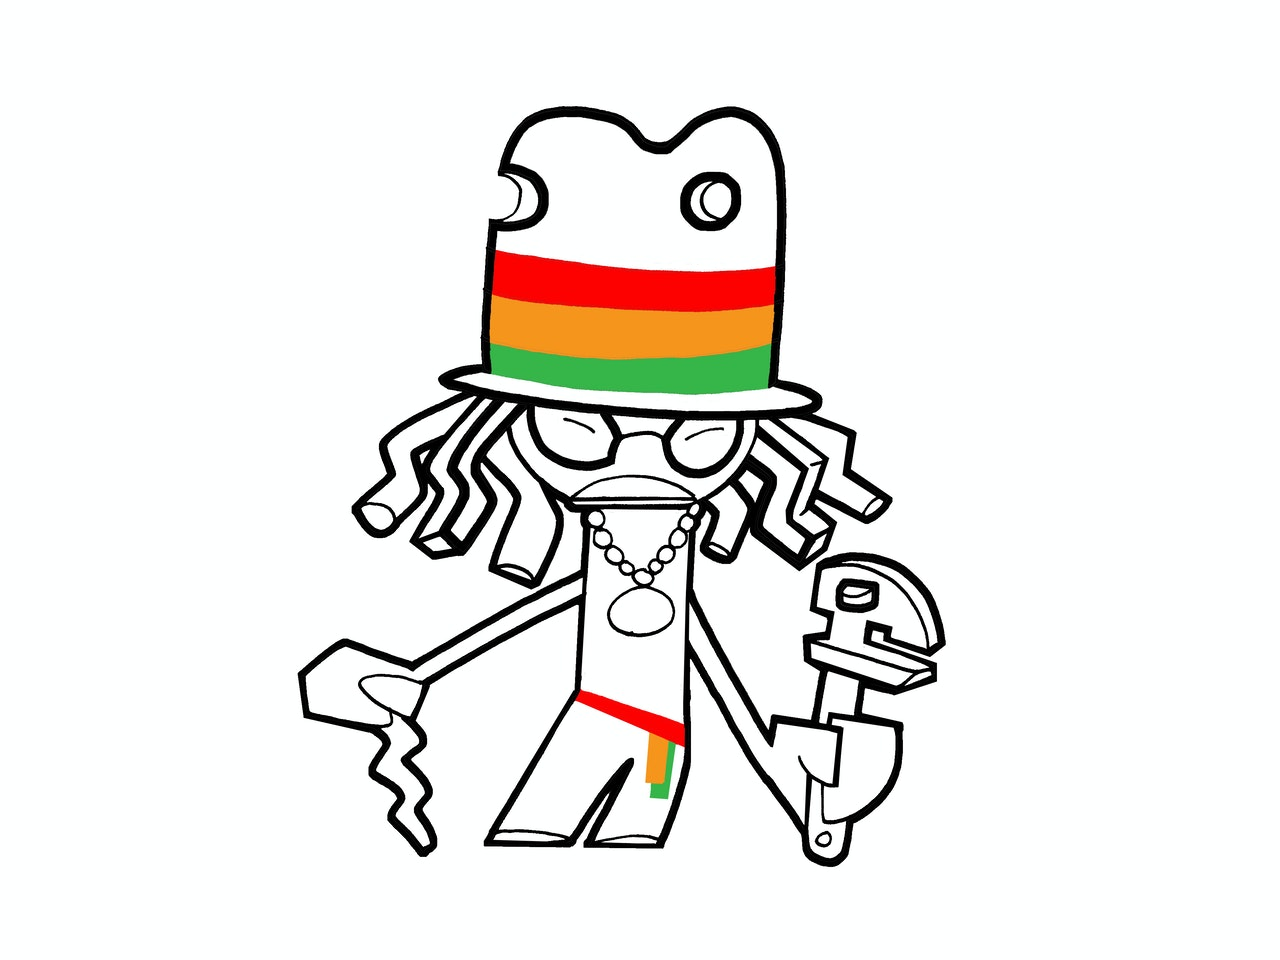 rasta yardman ratchet dreadlock rudie rude boy fun friendly cartoon tattoo  logo icon emoji linework simple basic emoticon mascot avatar sprite animation anthropomorphic character urban vinyl toy street art  pictoplasma graffiti graff